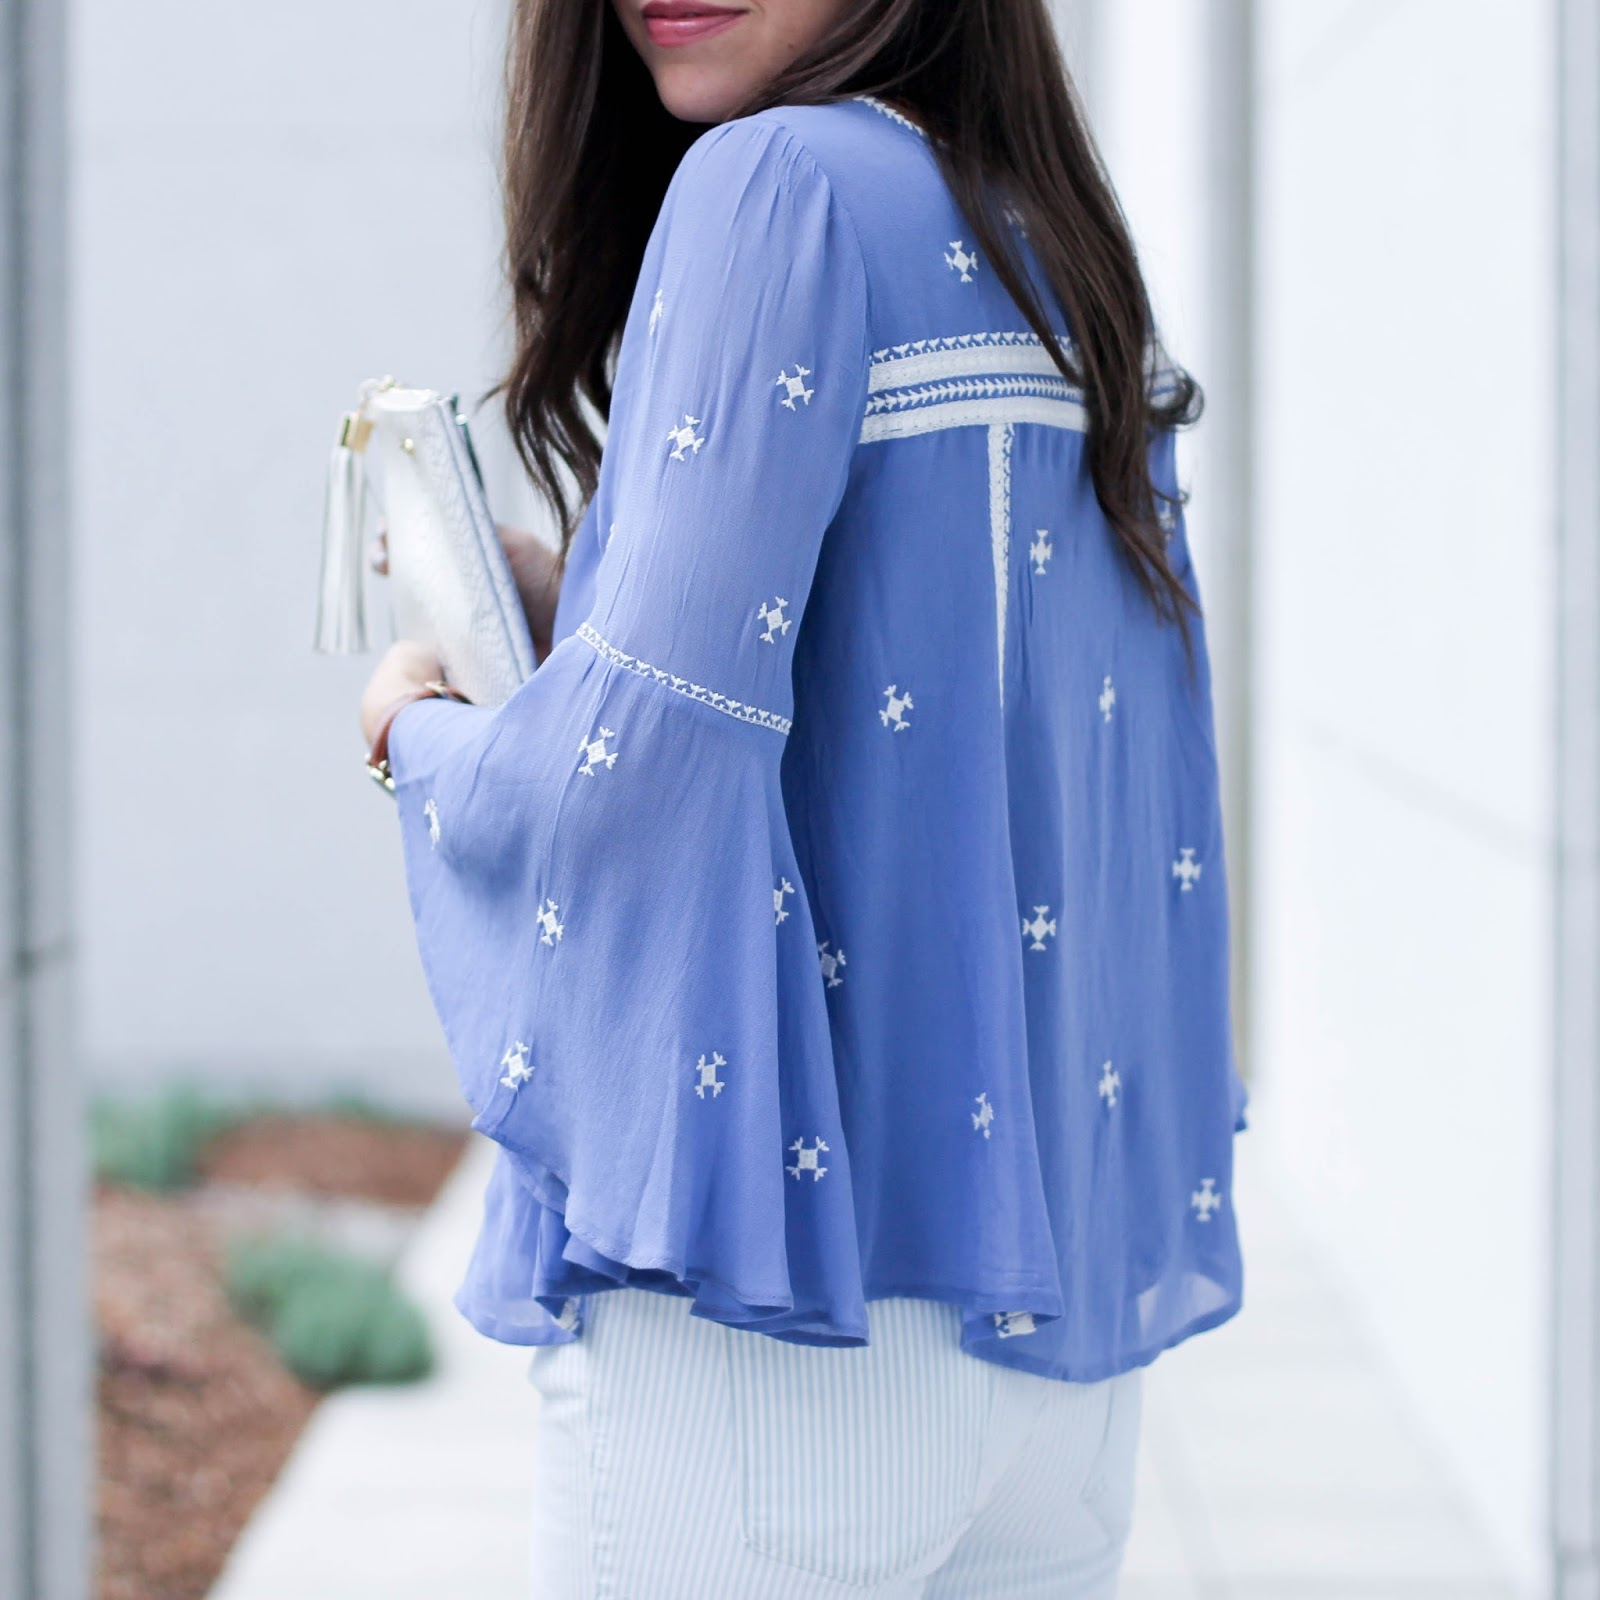 Anthropologie Embroidered Blouse, summer outfit idea, summer blouse, fashion blog, pretty in the pines, nc blogger, north carolina blogger, striped skinny jeans, jessica simpson white wedges, gigi new york all in one clutch, shelby vanhoy